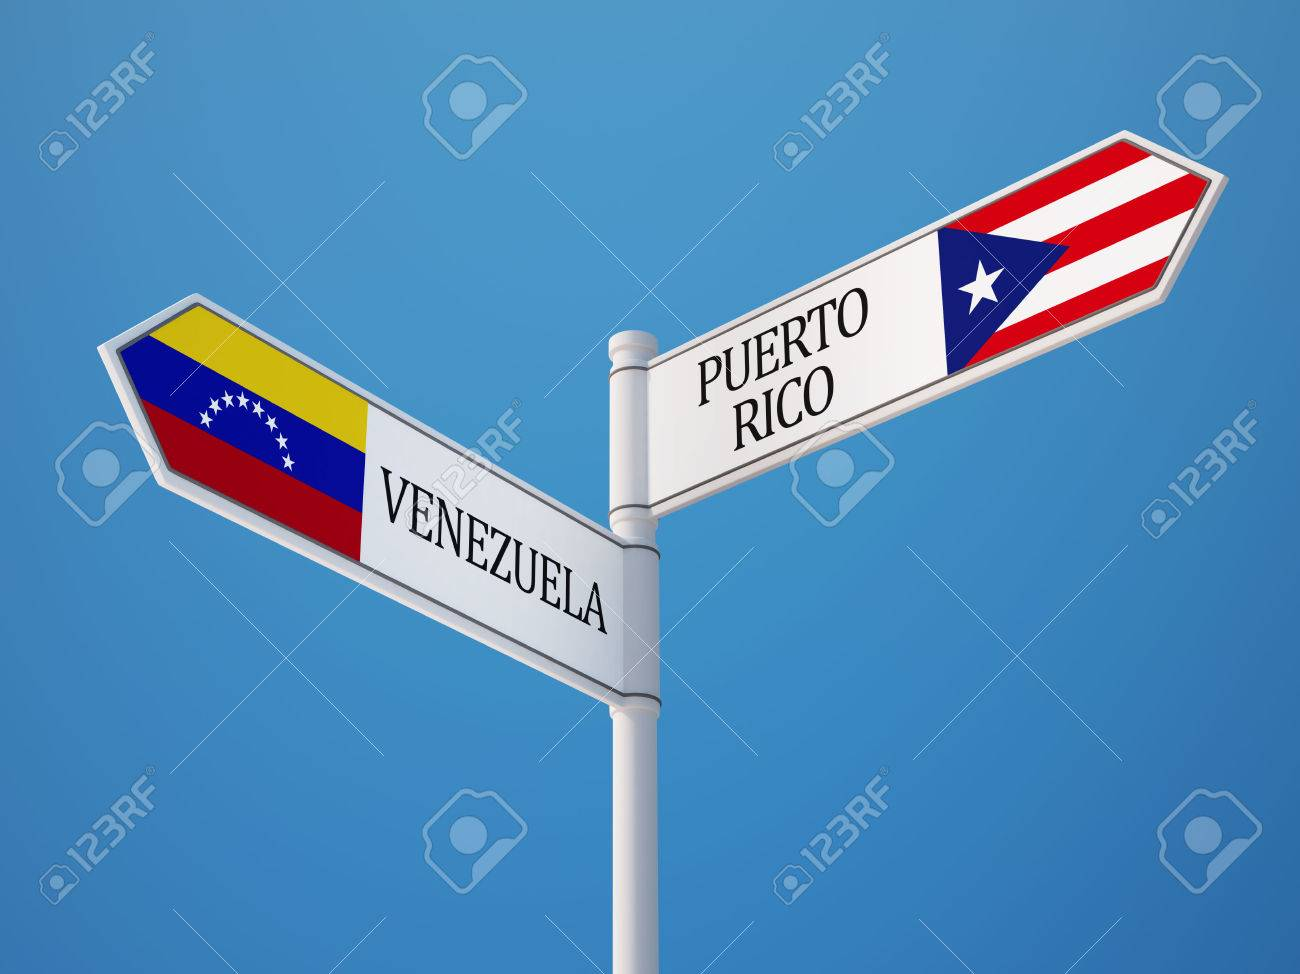 Image result for Puerto Rico and Venezuela